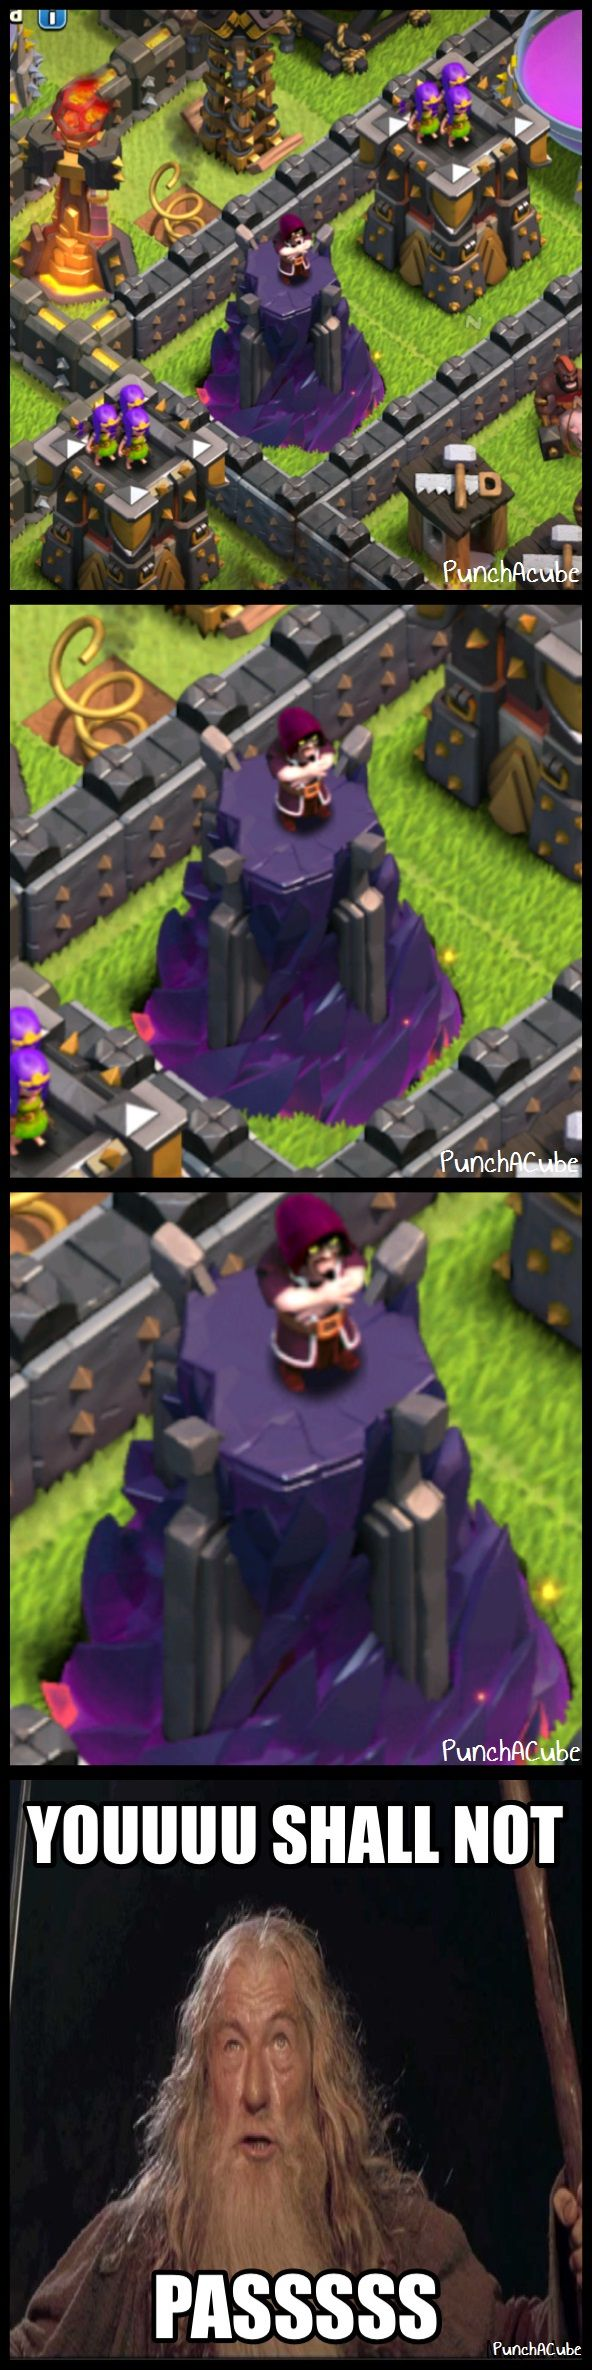 Clash of Clans Wizards Would Definitely Say….   #ClashofClans #Memes #youshallnotpass #donmesswithlvl10wizard